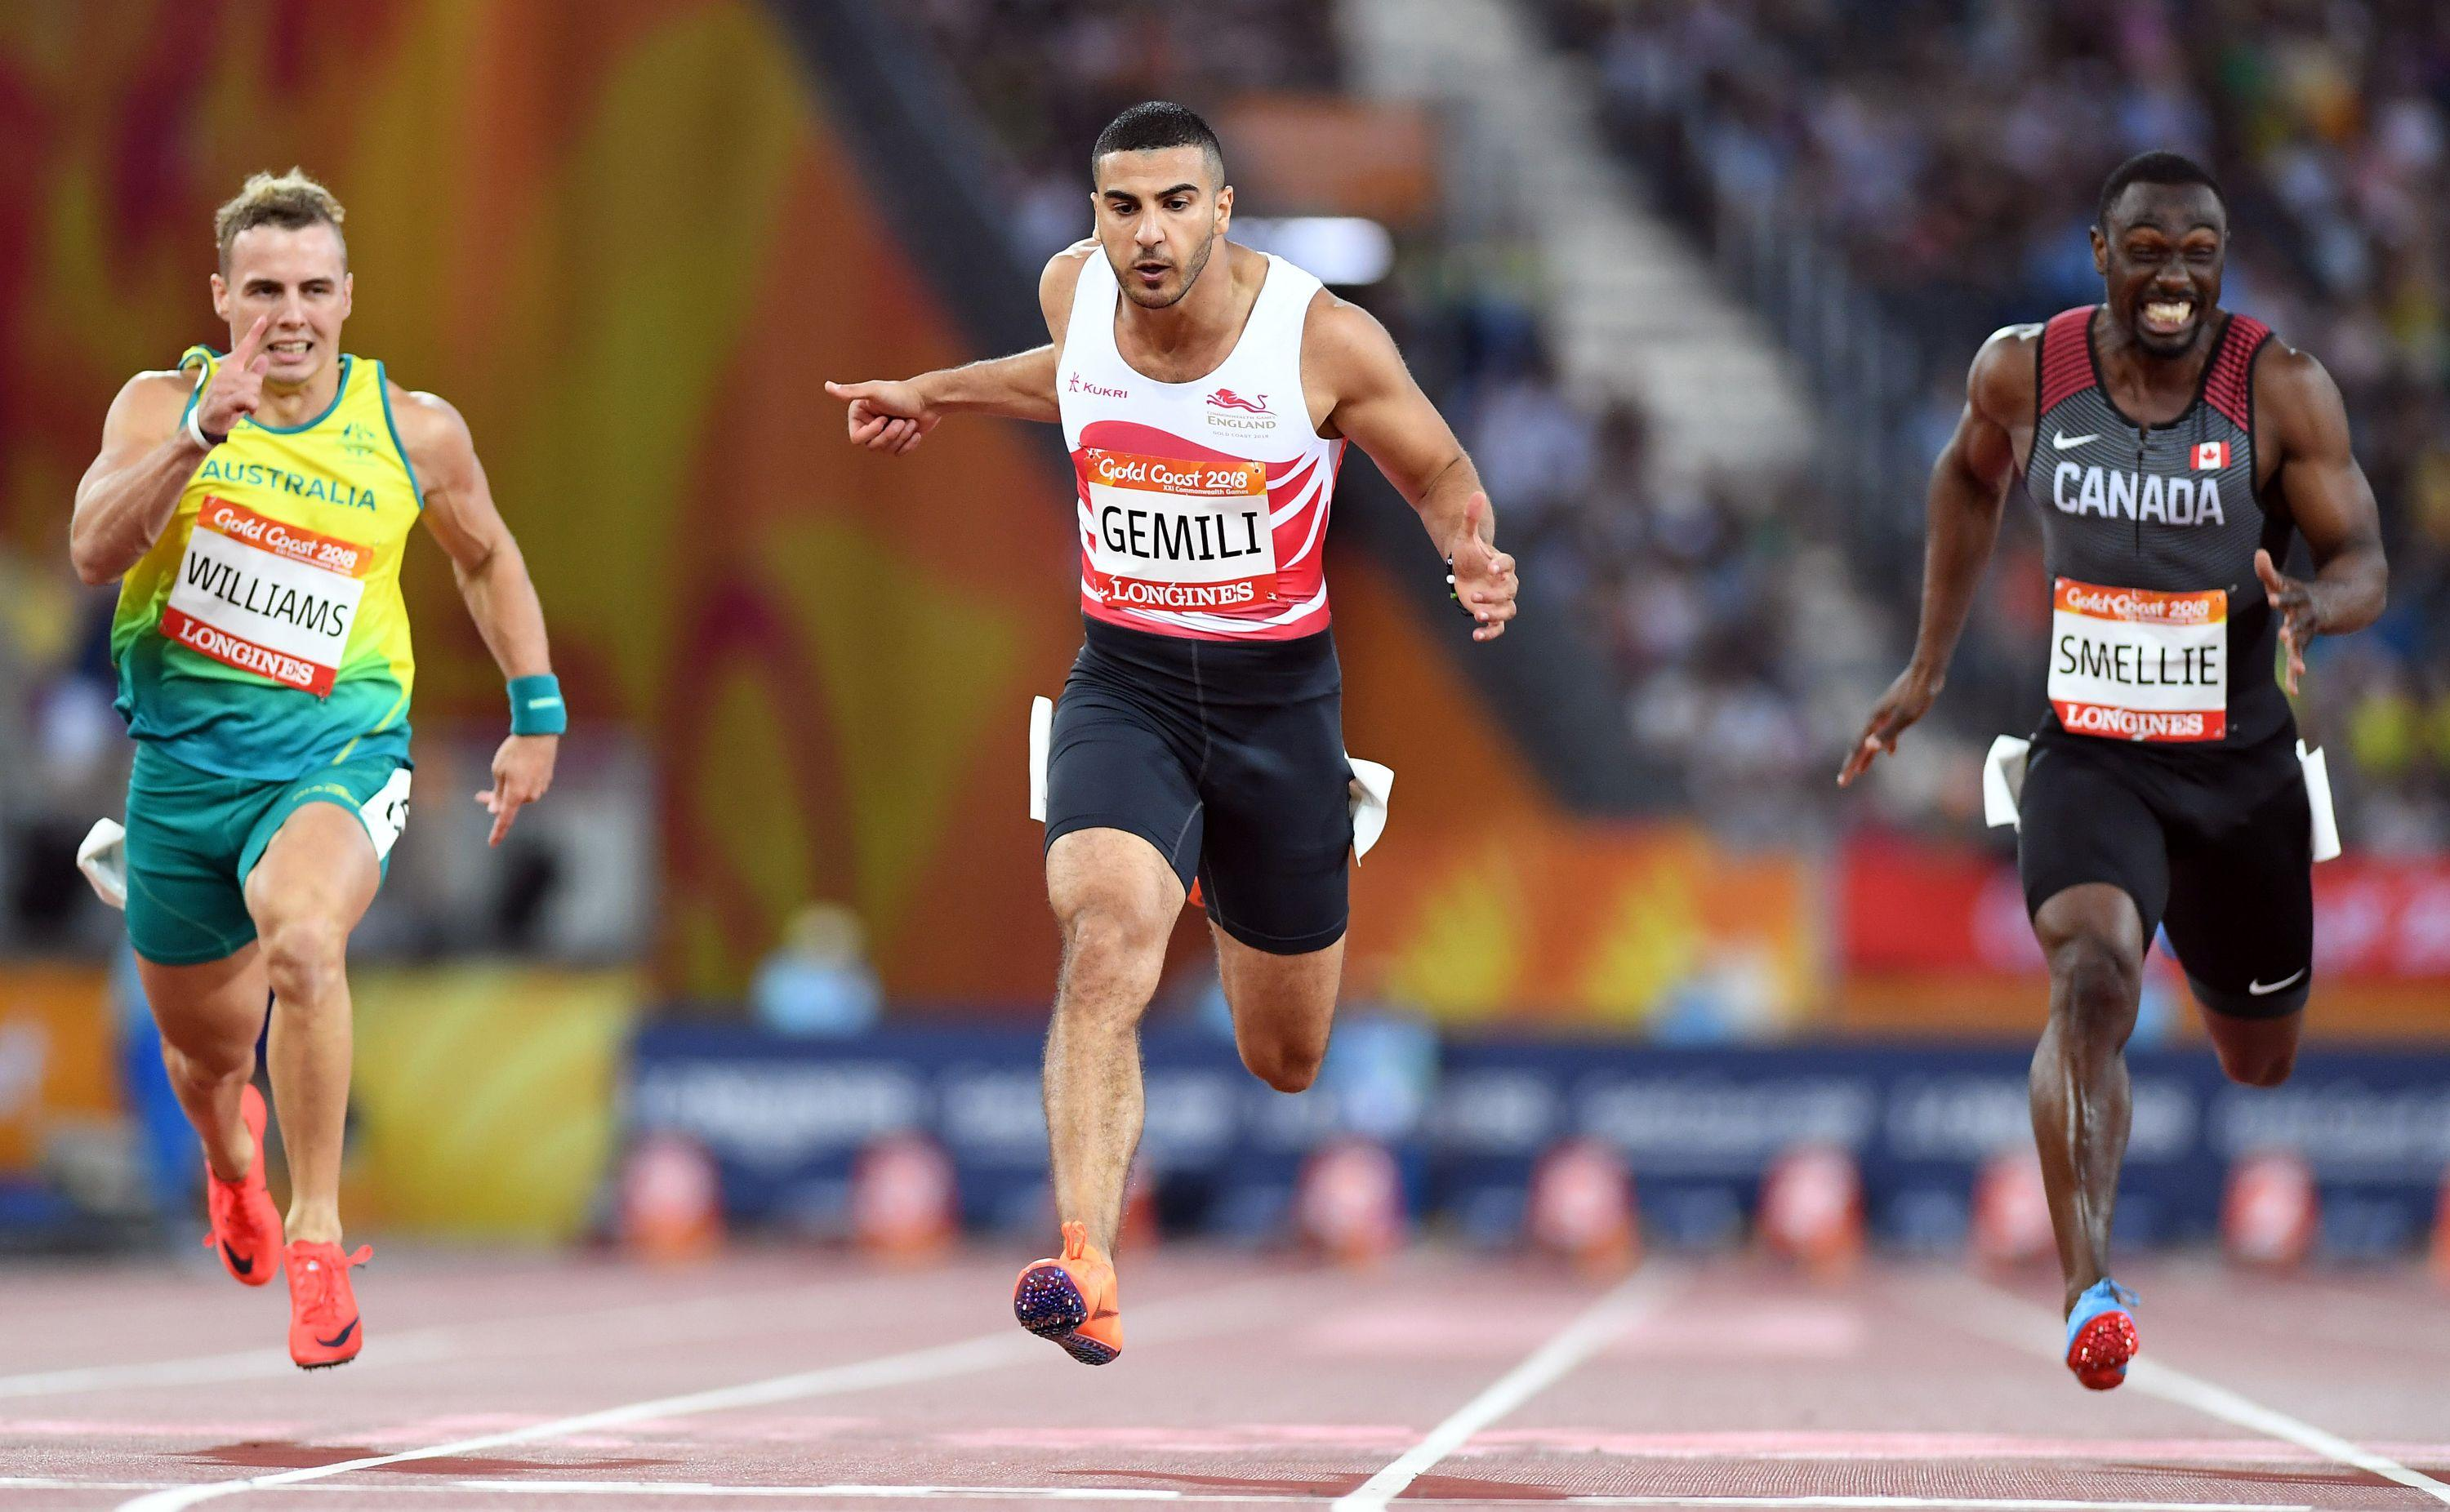 Adam Gemili has had to pull out of the race with a thigh issue